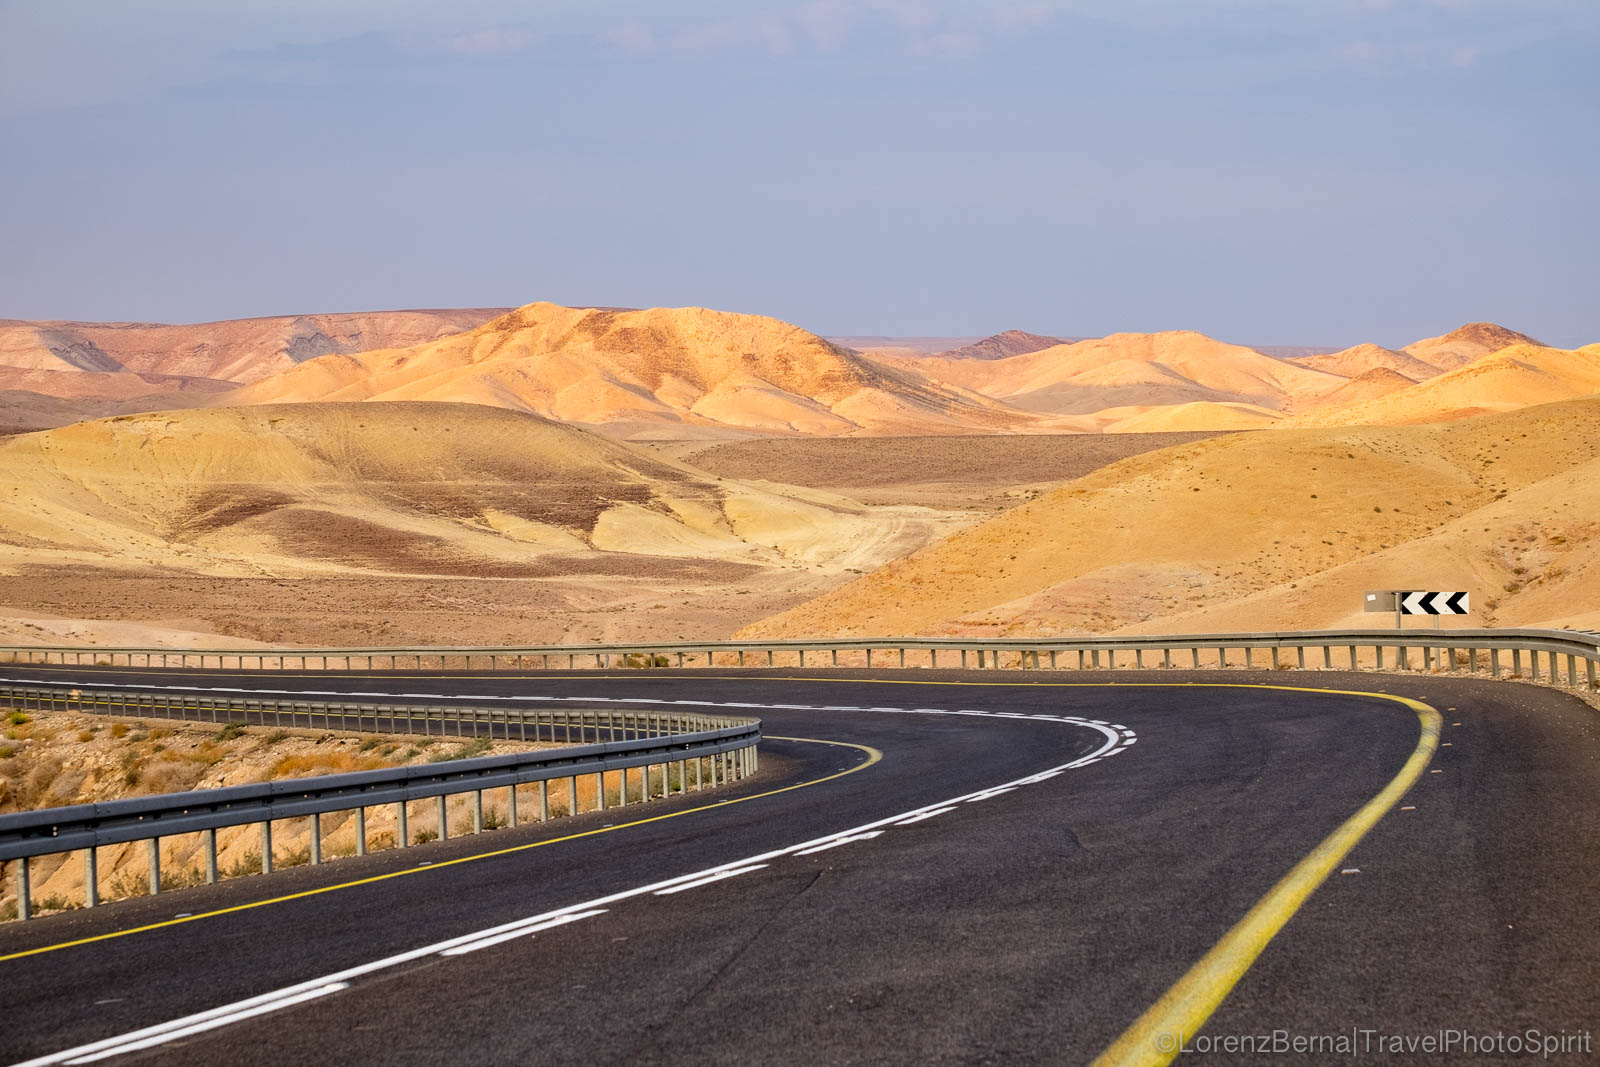 Modern roads crossing the ancient Judean desert, Israel.